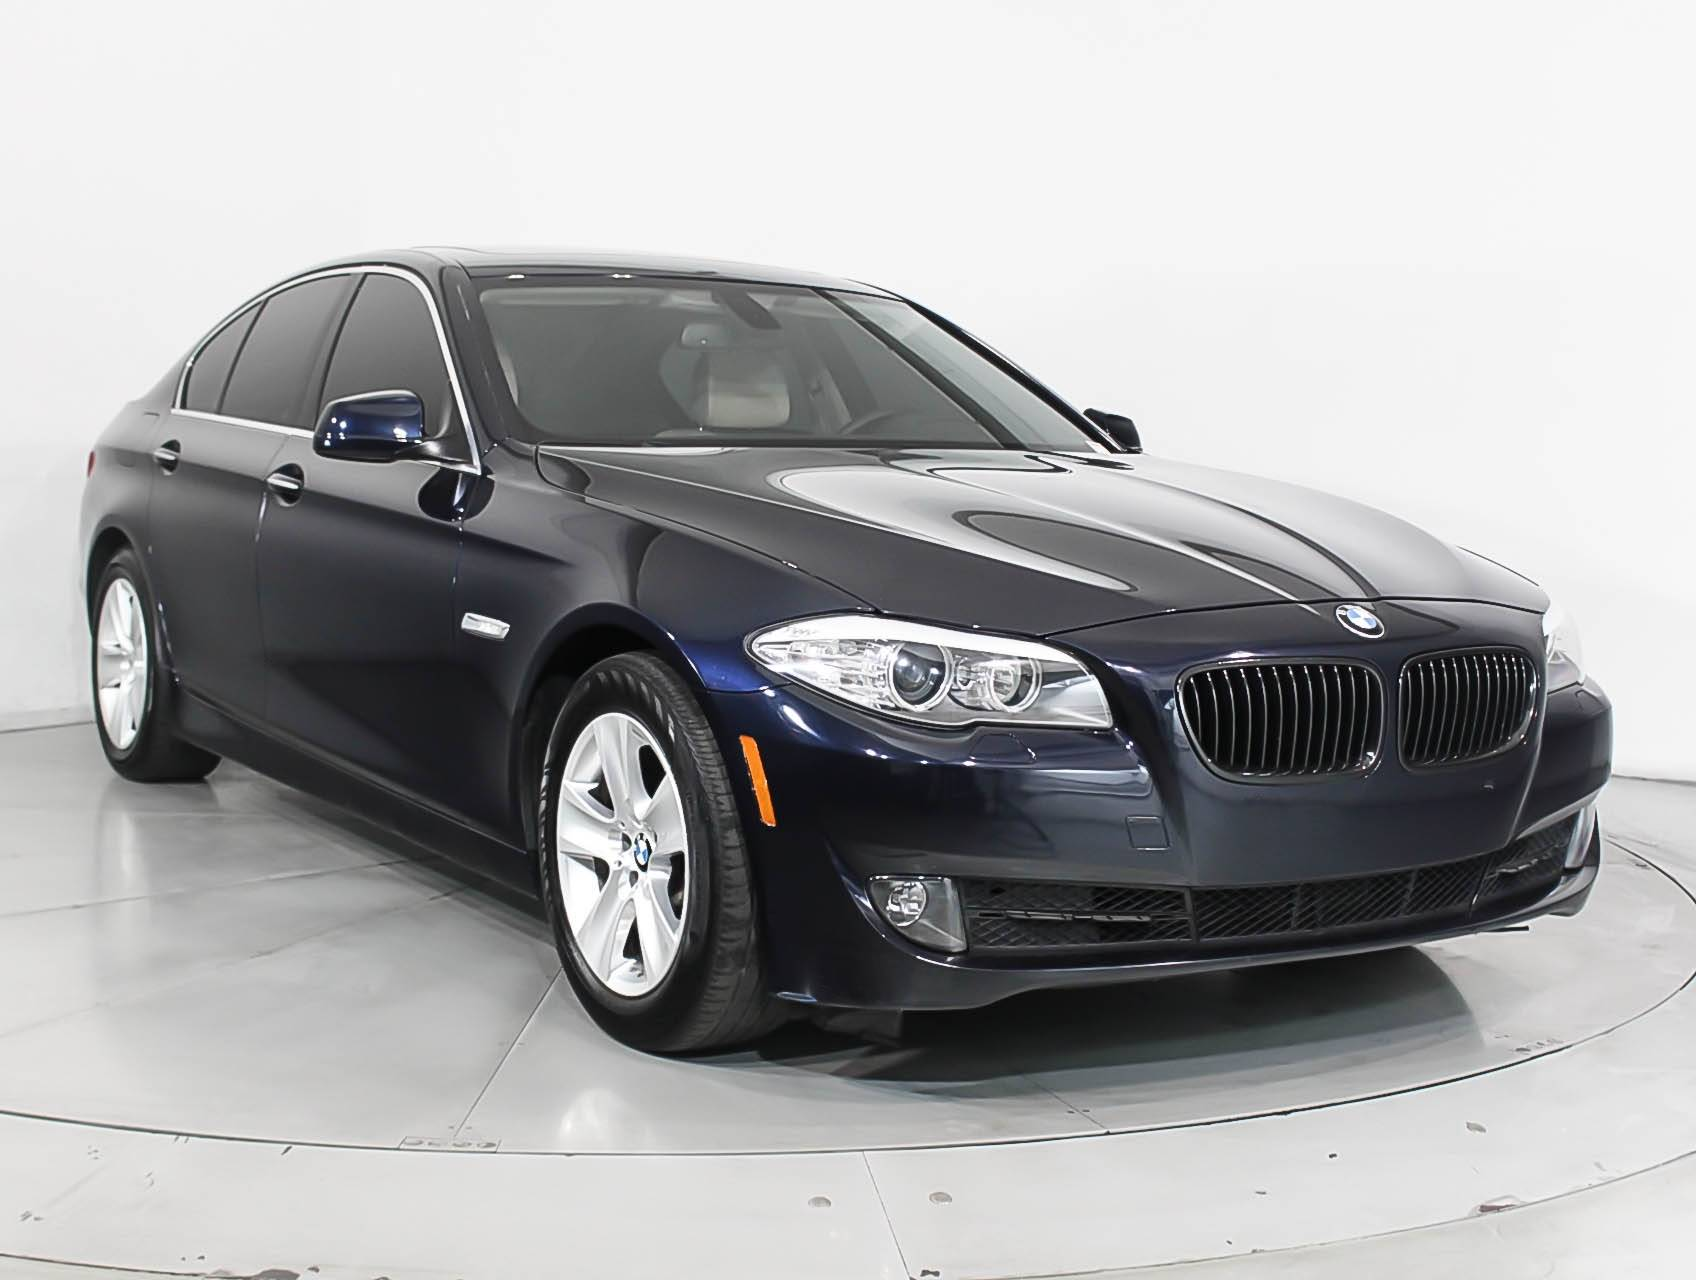 Used 2011 Bmw 5 Series 528i Sedan For Sale In Hollywood